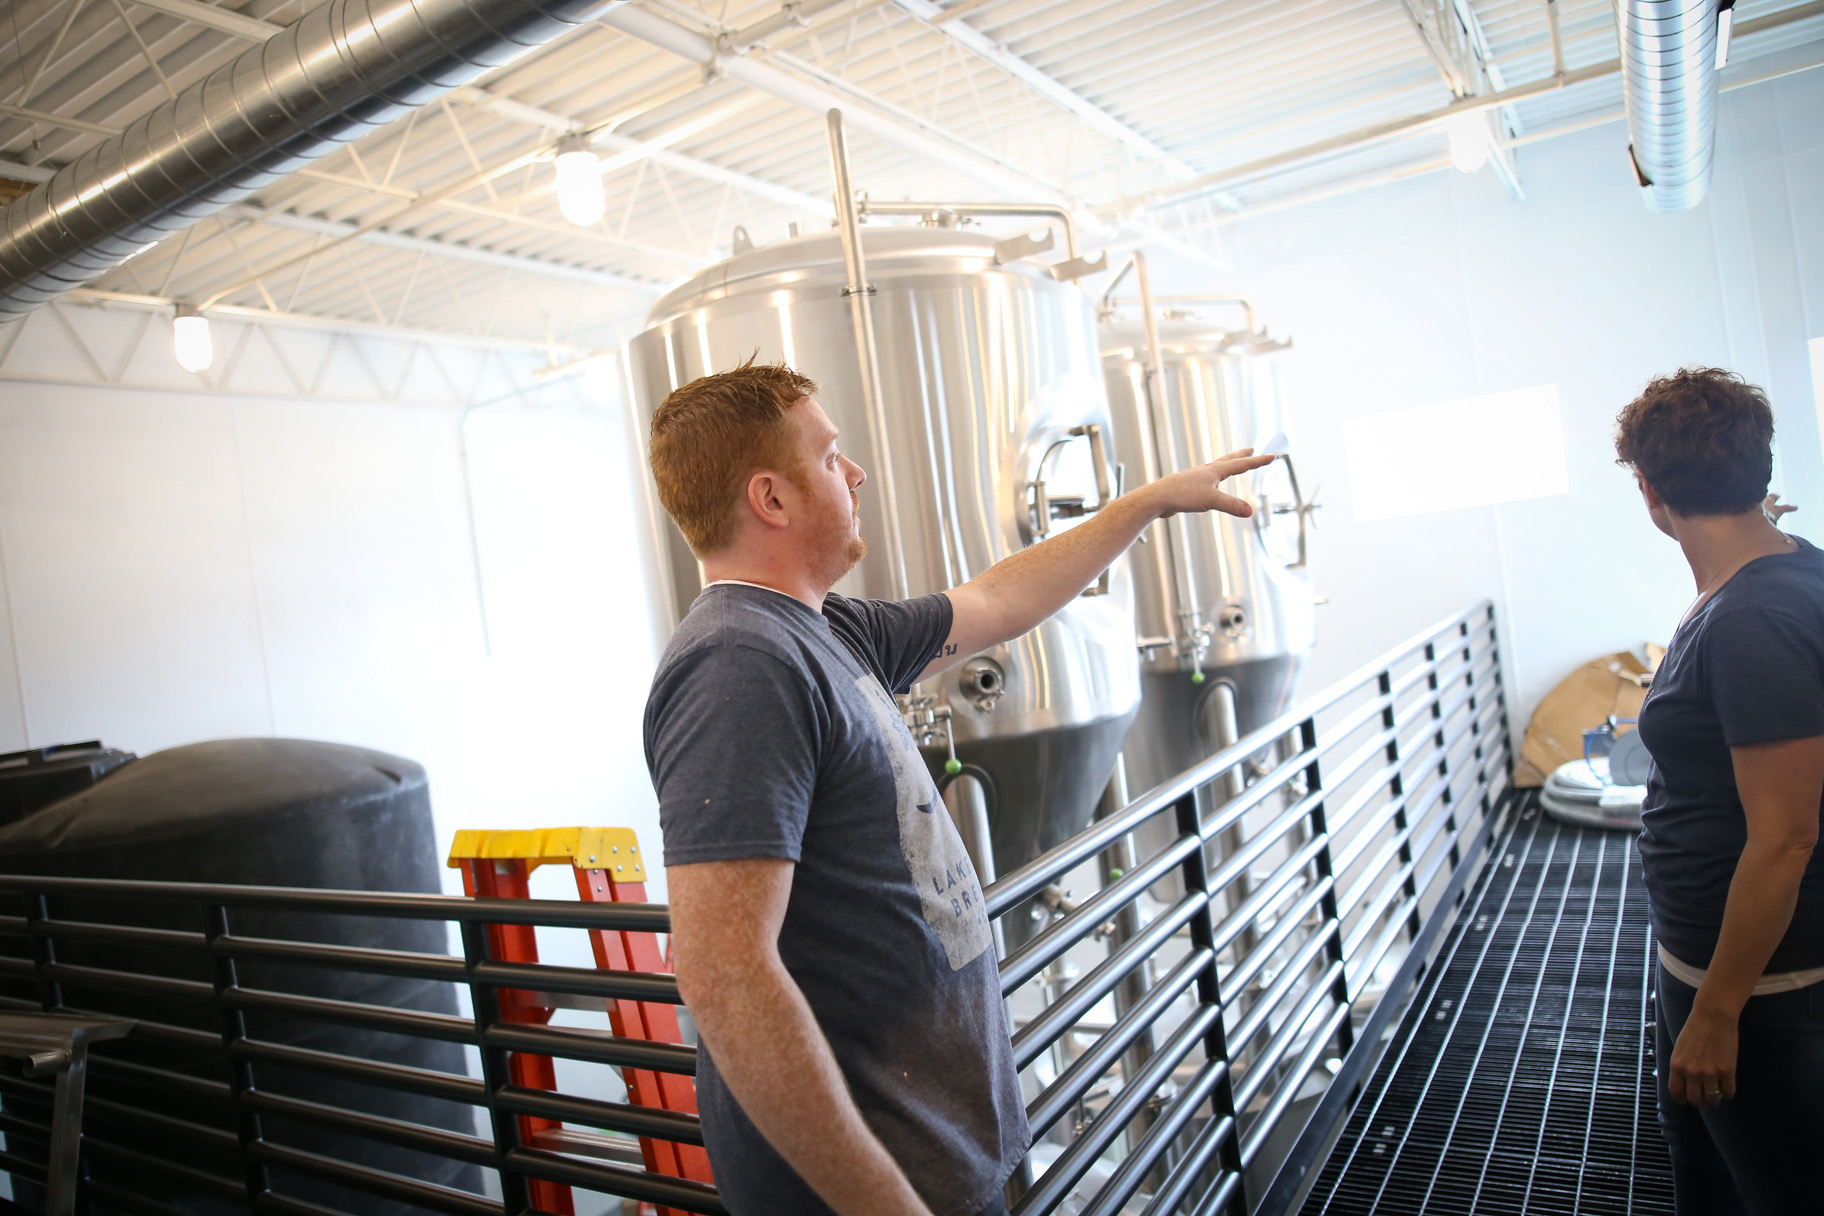 Glen Bruestle, co-owner of Lakeville Brewing, giving a tour of the brewhouse // Photo by Aaron Davidson